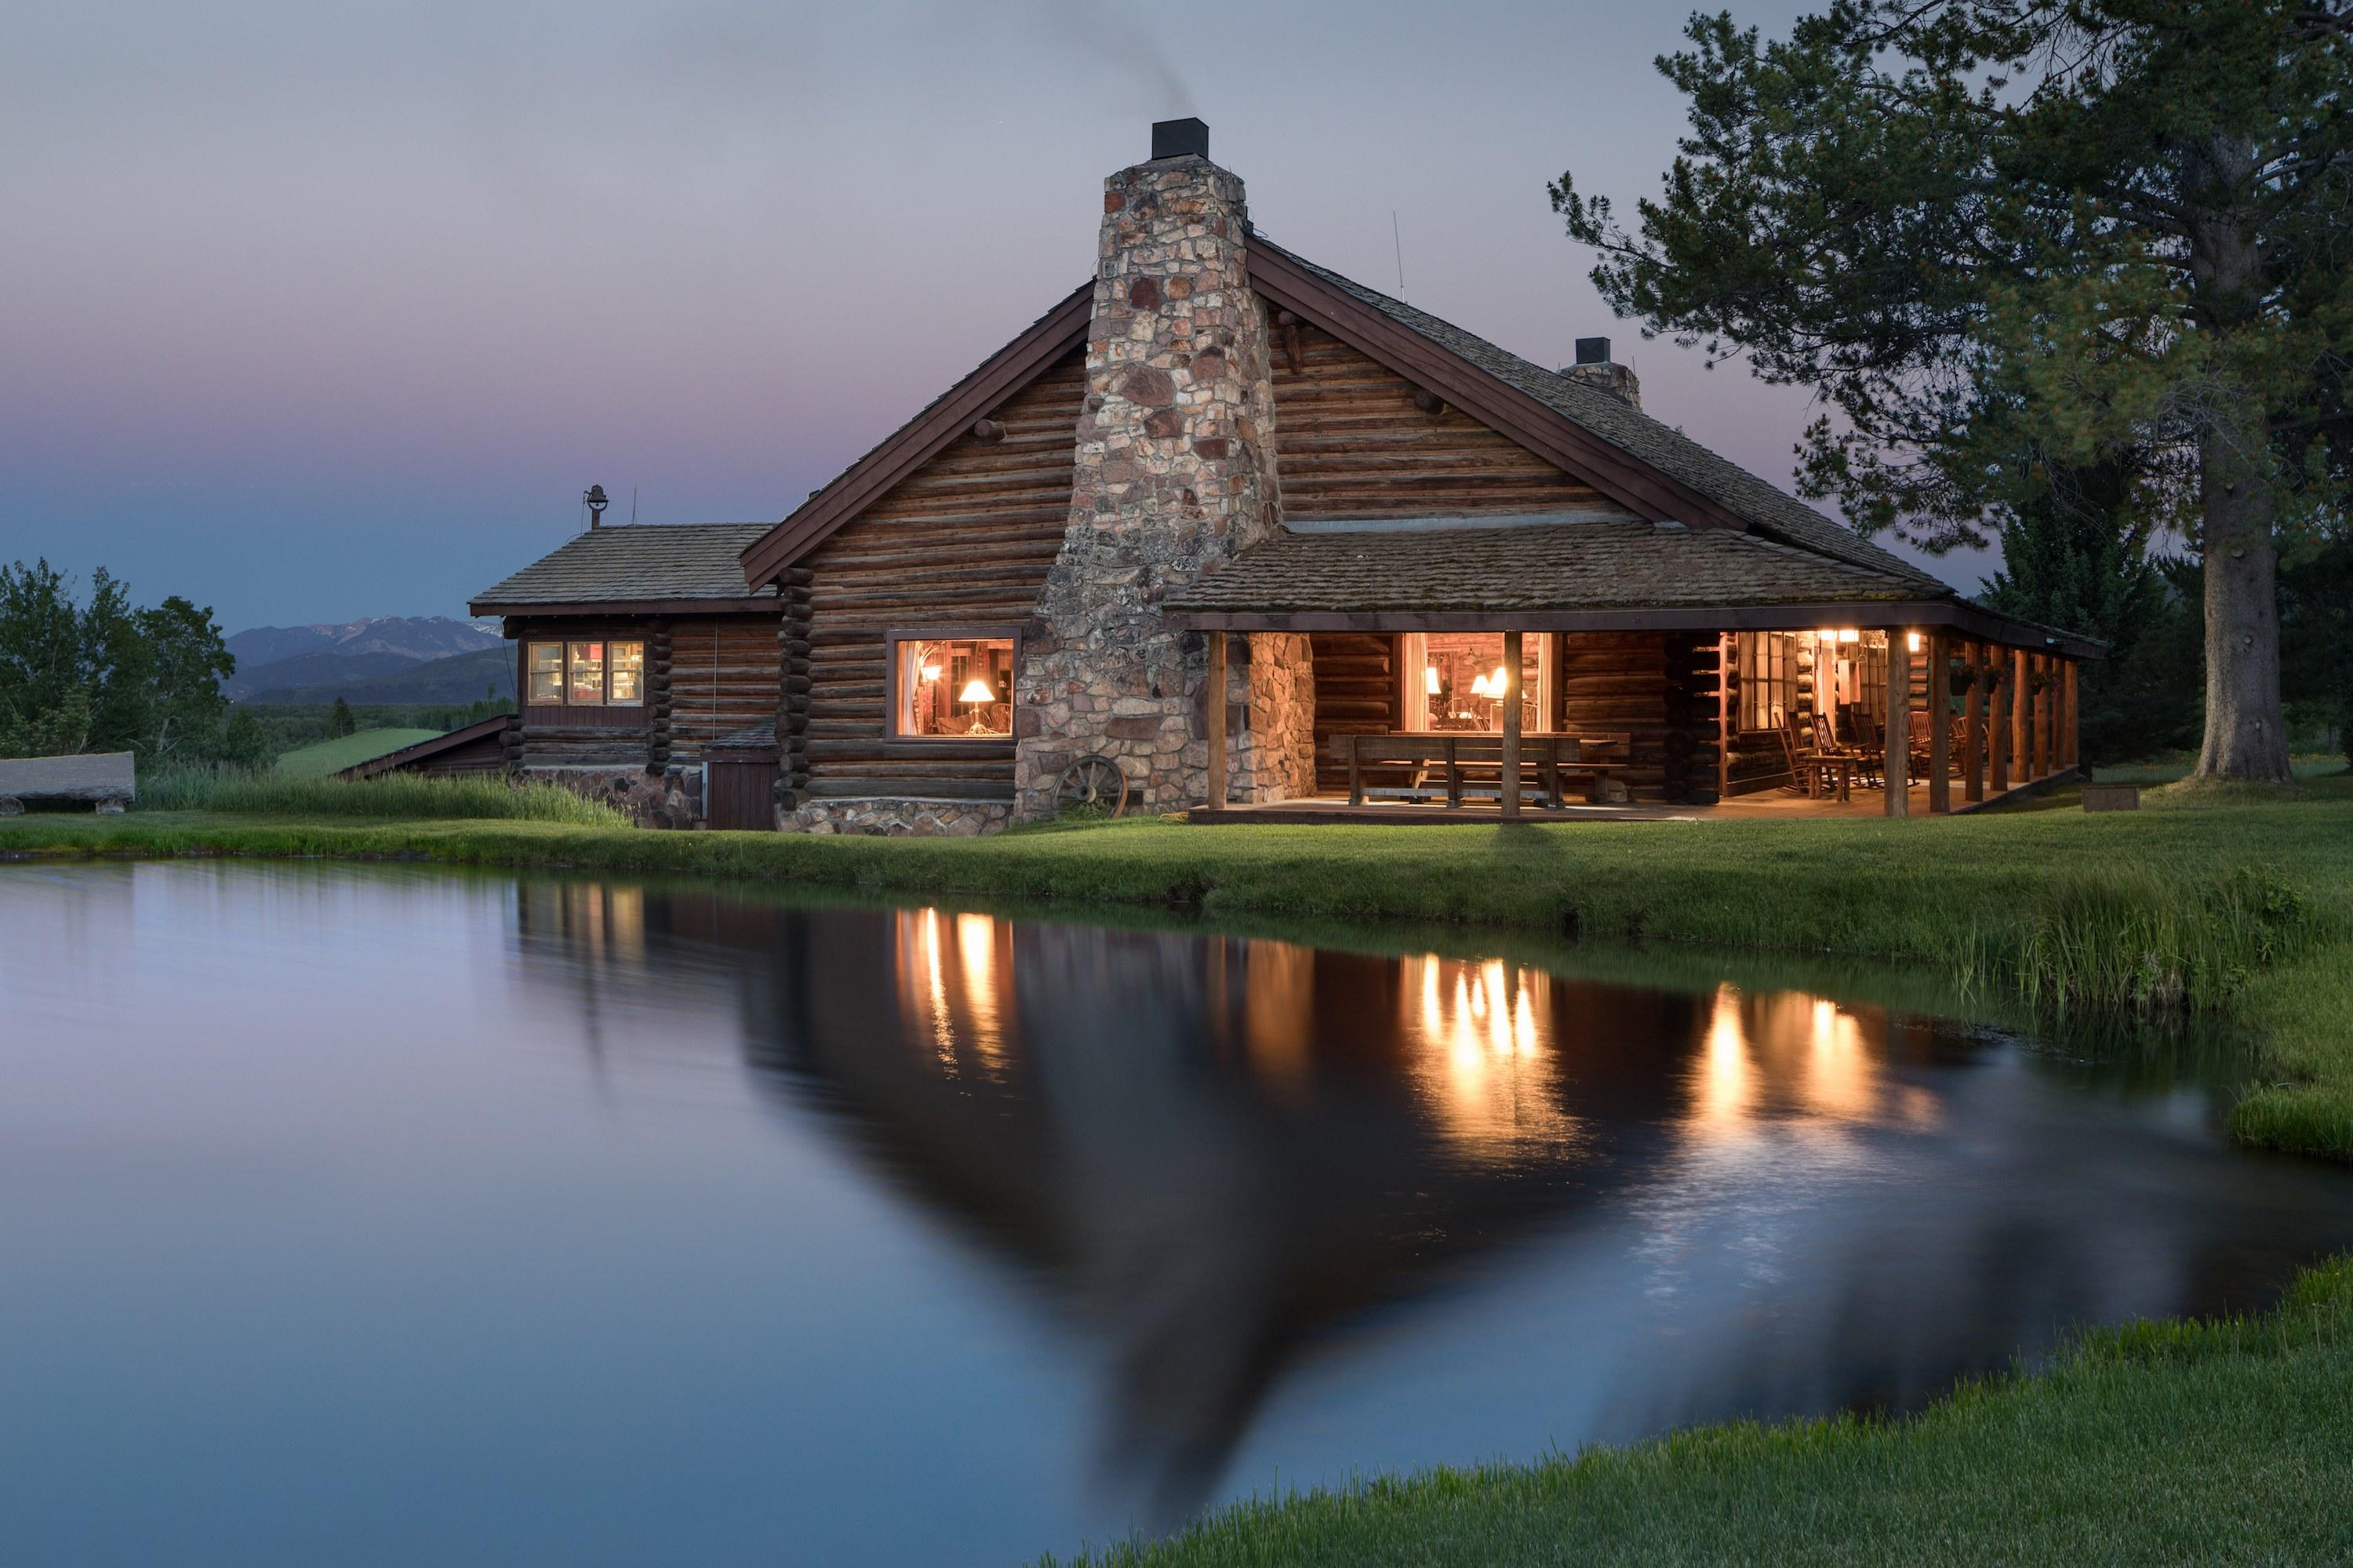 Luxurious Bedrooms 22 Of The Most Beautiful Cabins For Sale In America